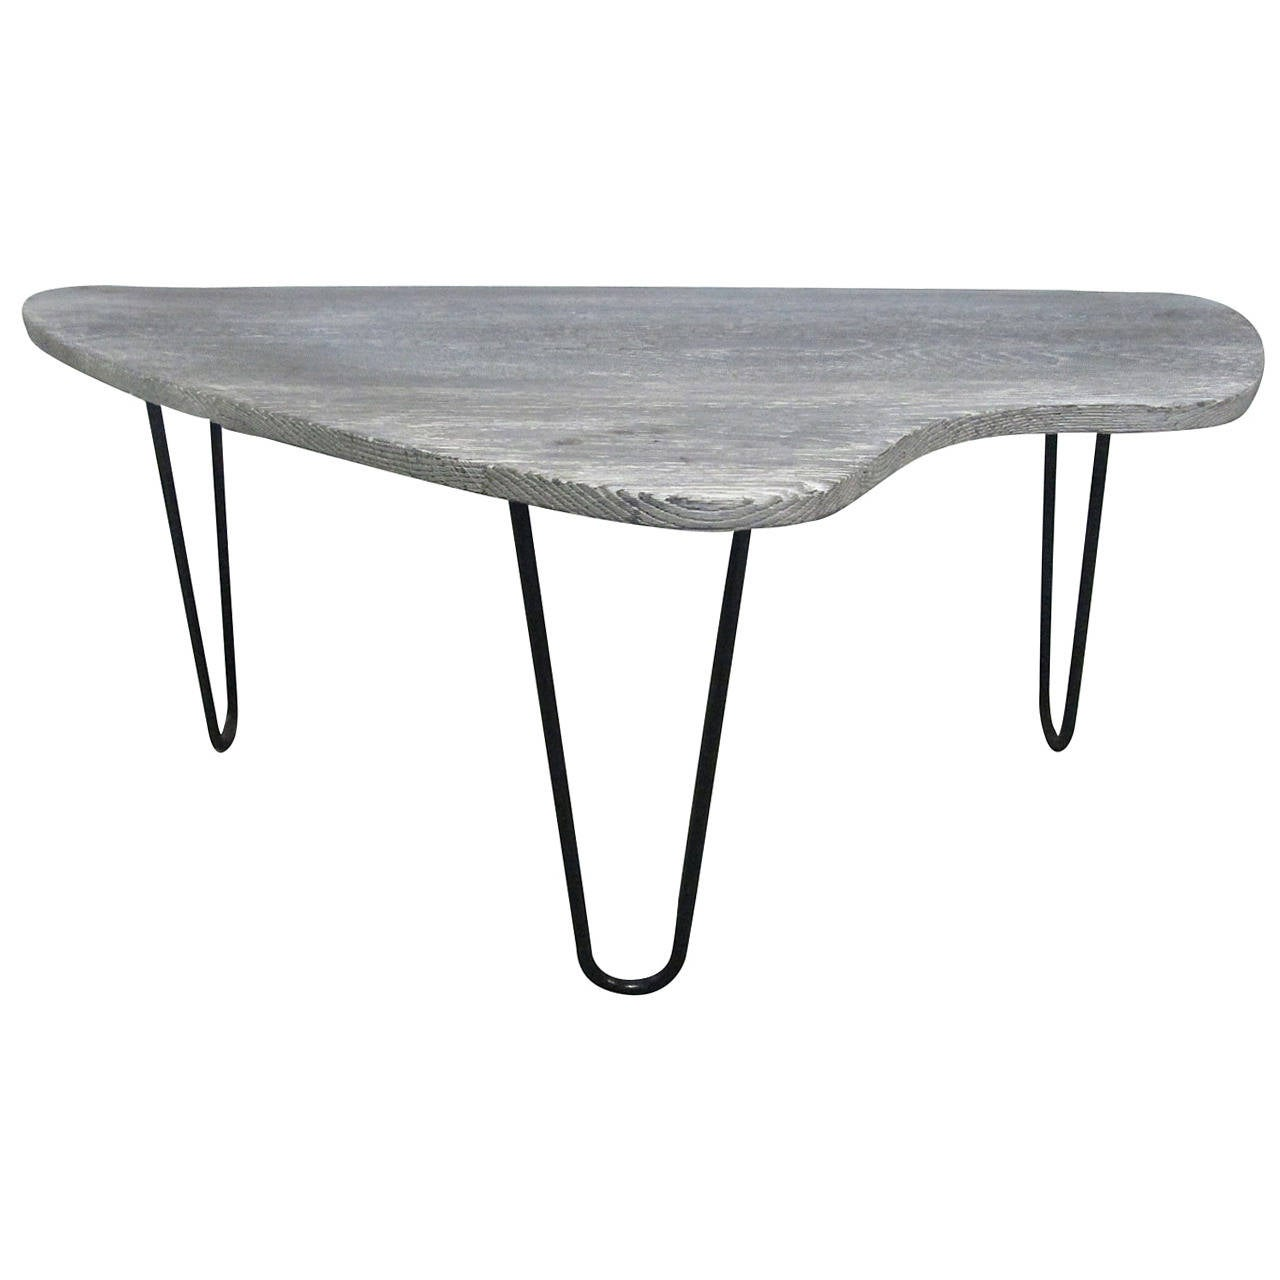 French Cerused Organic Form Coffee Table